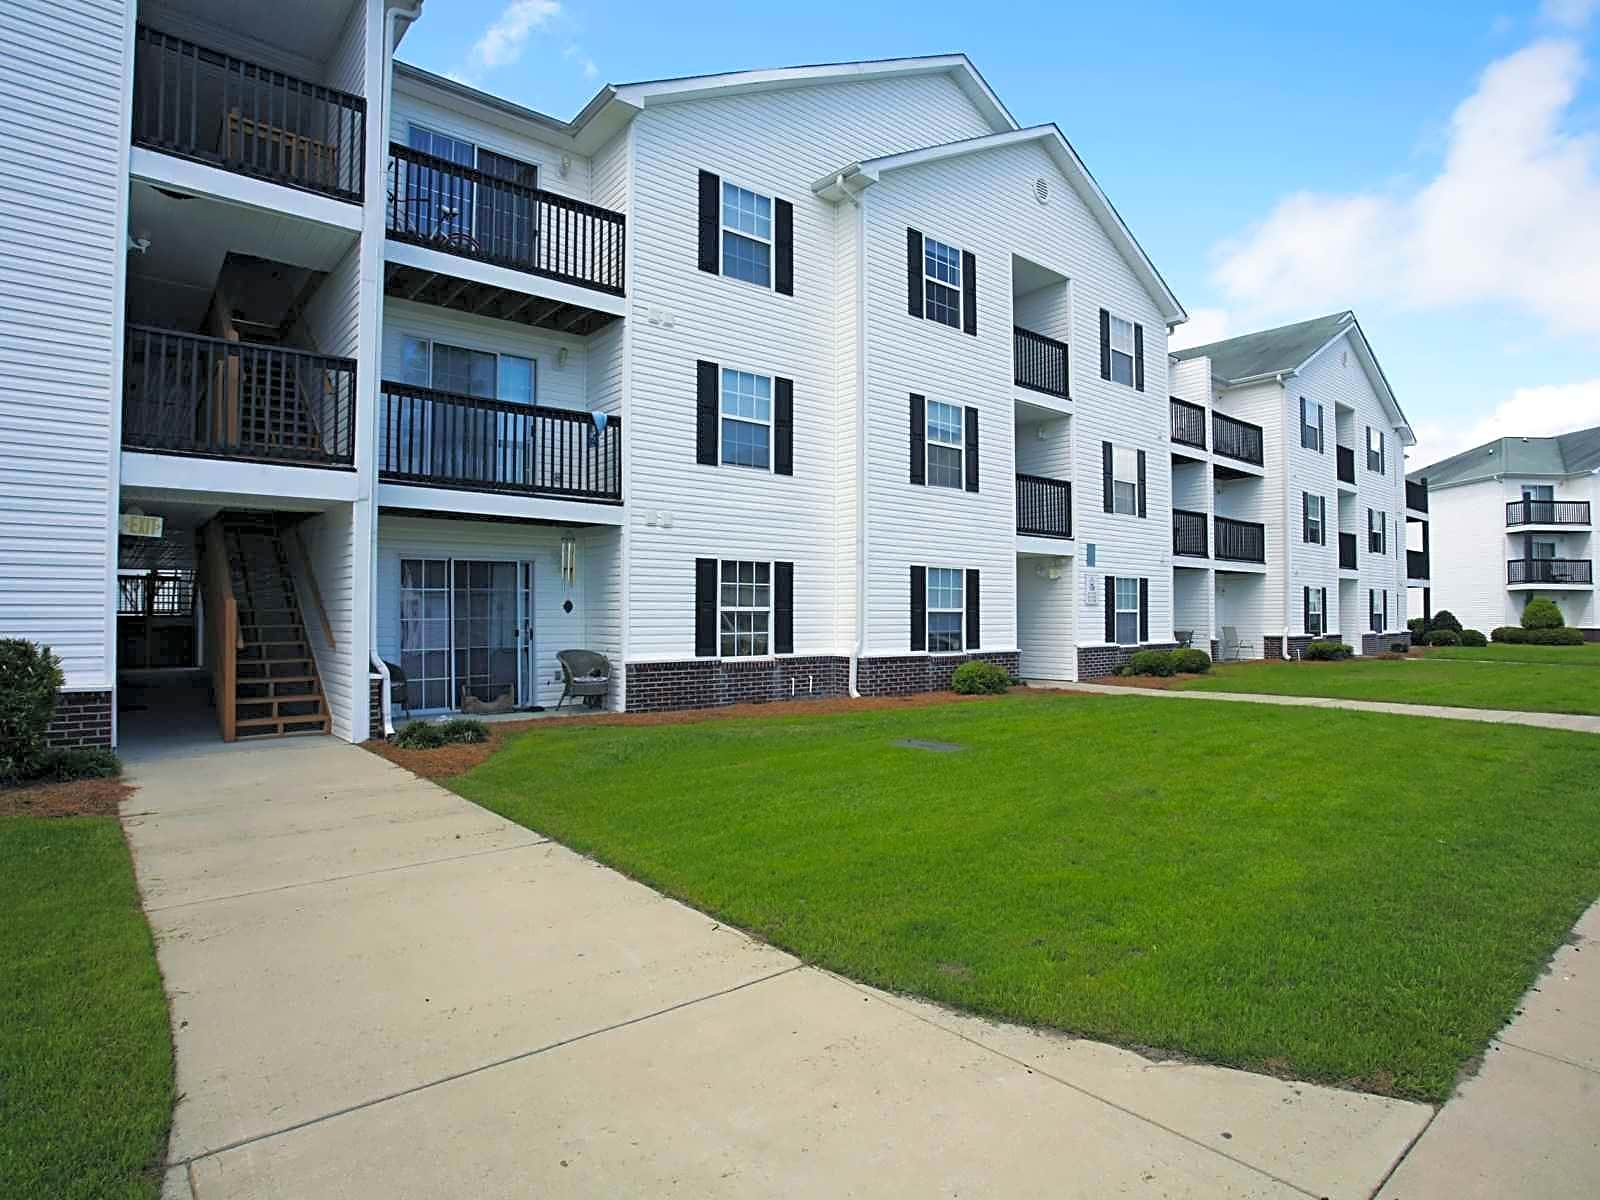 ClayPond Commons for rent in Myrtle Beach